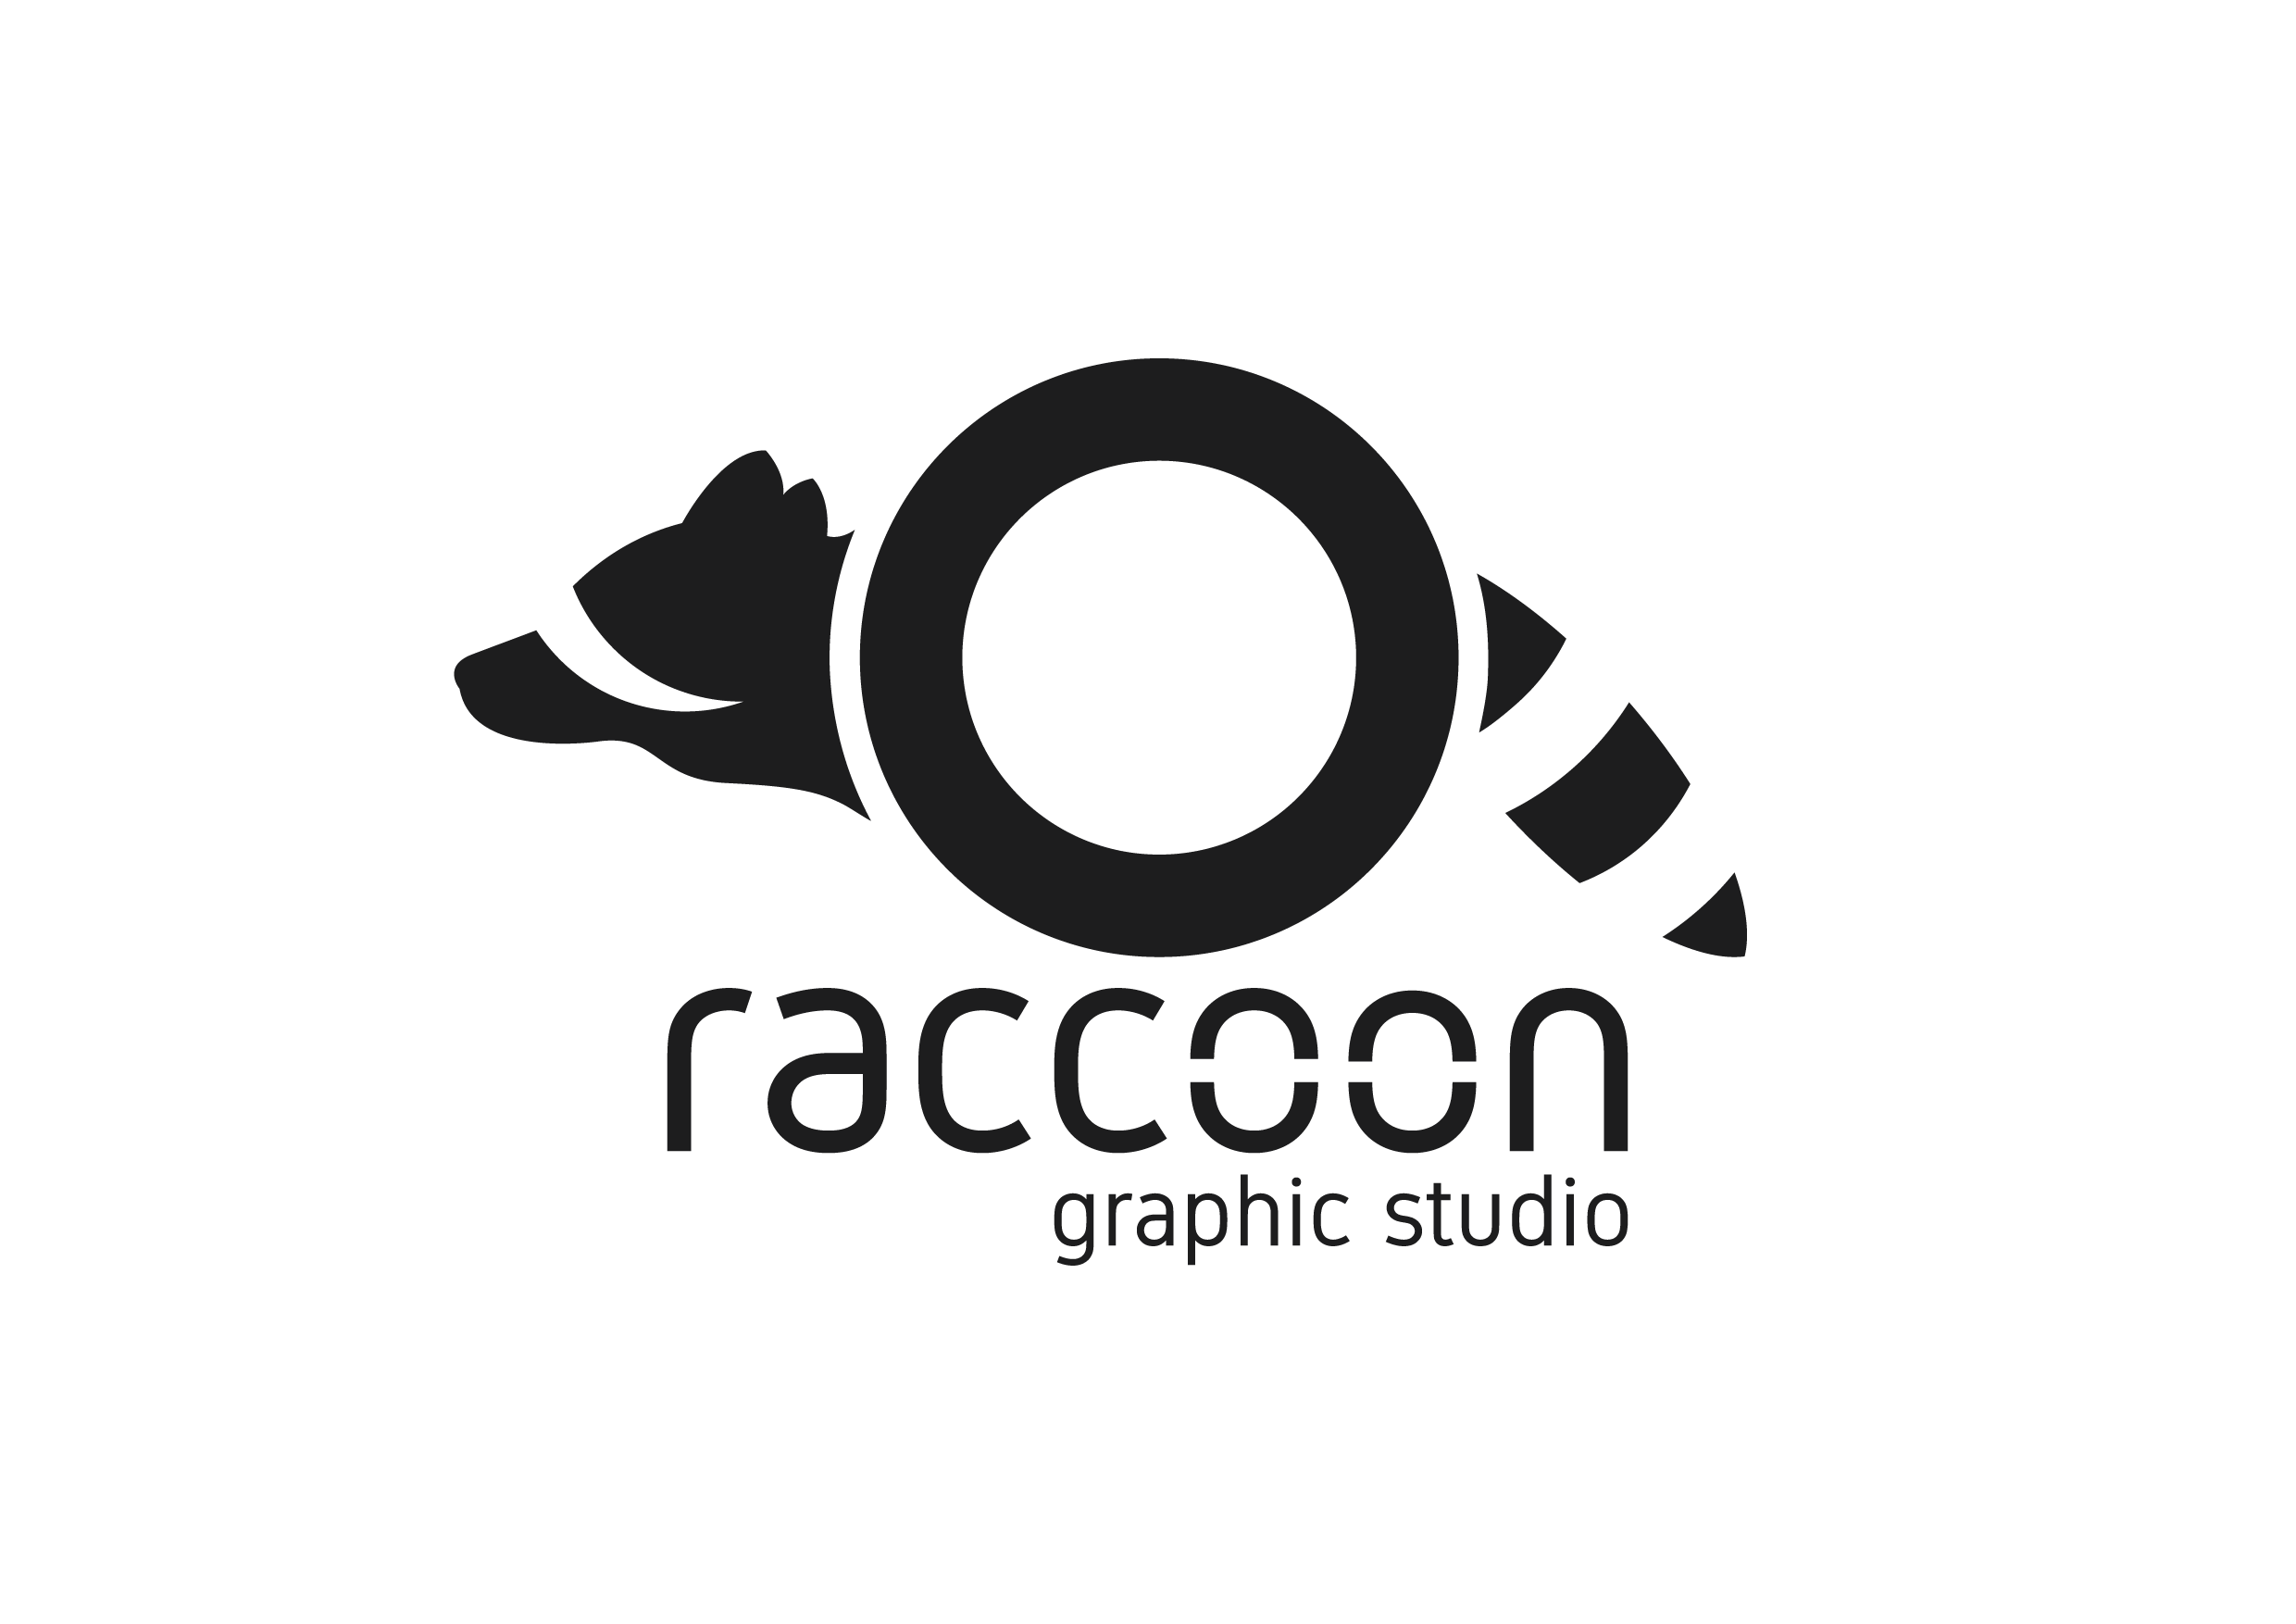 Racoon Graphic Studio